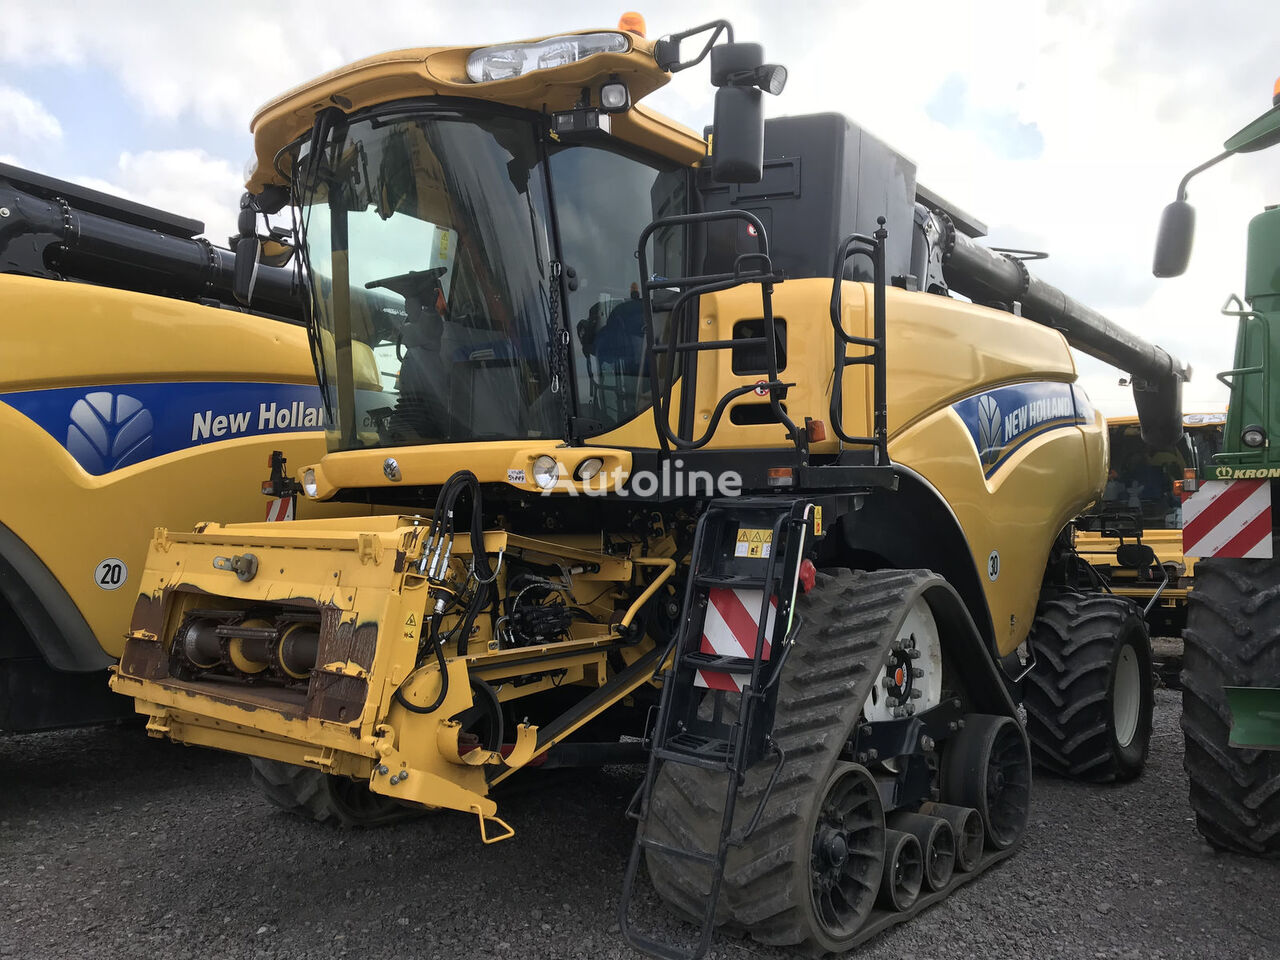 moissonneuse-batteuse NEW HOLLAND CR 9080 ST , 12,3m Schneidwerk